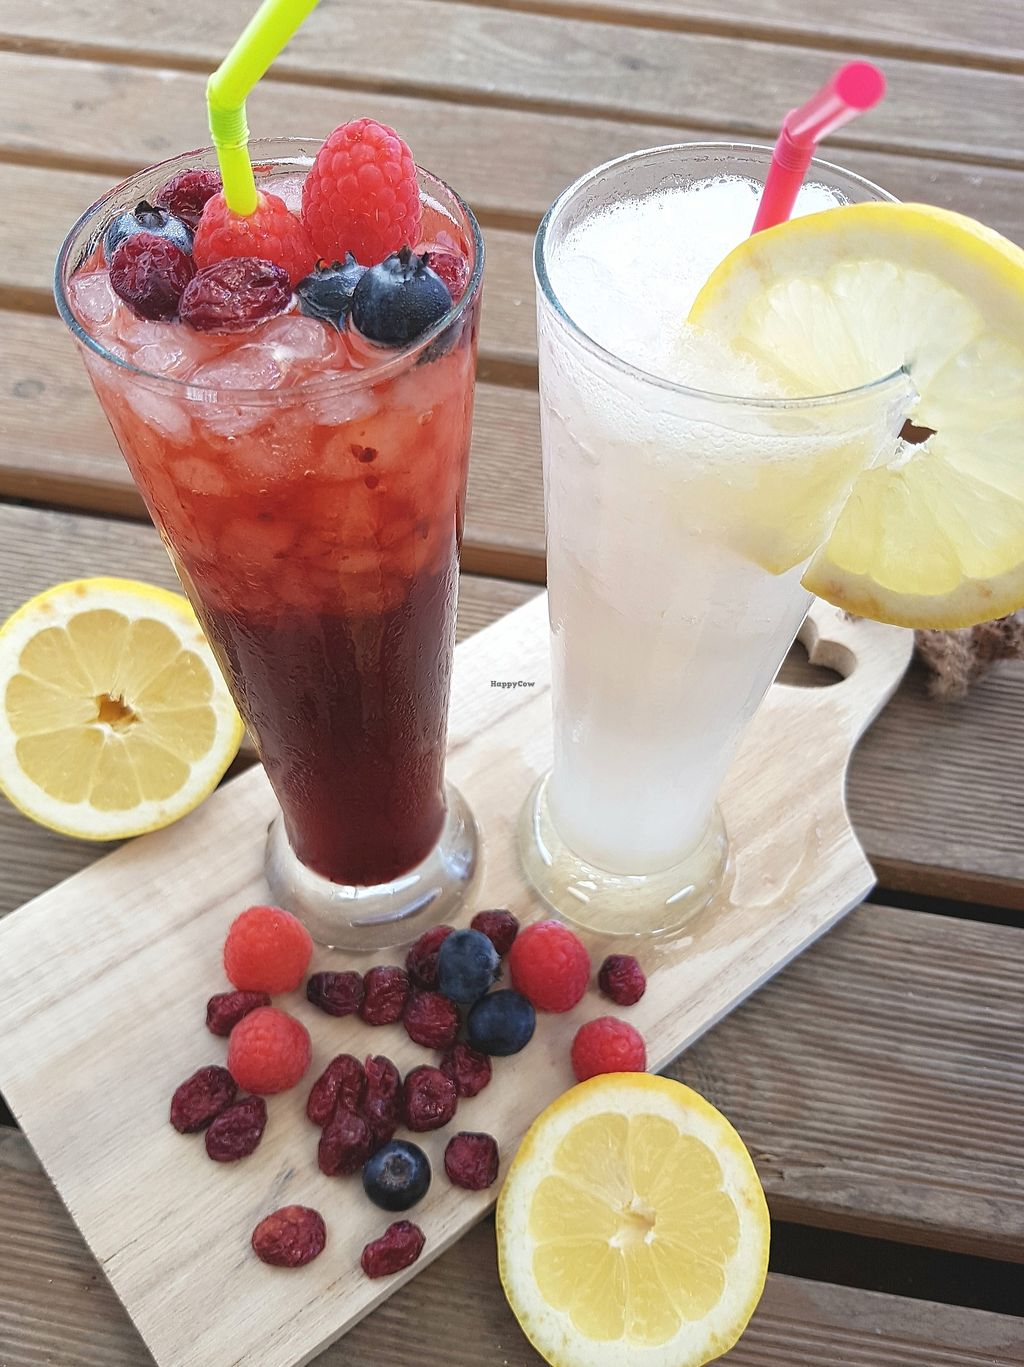 """Photo of Petit Vegan  by <a href=""""/members/profile/petitvegan"""">petitvegan</a> <br/>Smoothies made of lemon, coconut, orange and berries <br/> July 13, 2017  - <a href='/contact/abuse/image/95126/279893'>Report</a>"""